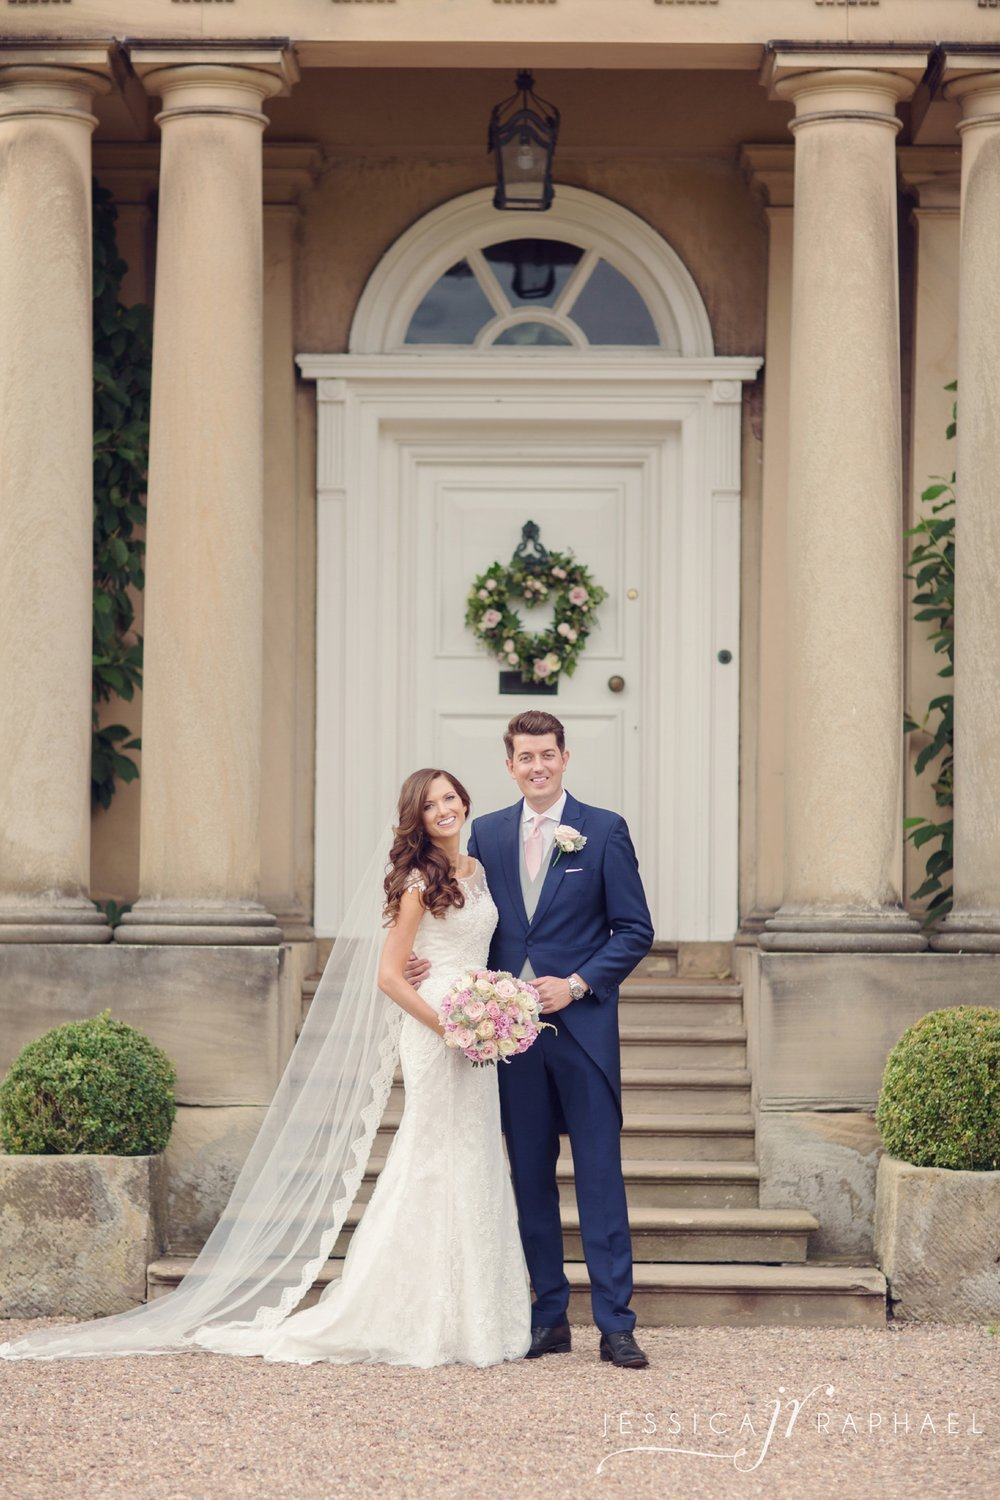 iscoyd-park-weddings-iscoyd-park-shropshire-jessica-raphael-photography-shropshire-wedding-photographers-iscoyd-park-wedding-photos